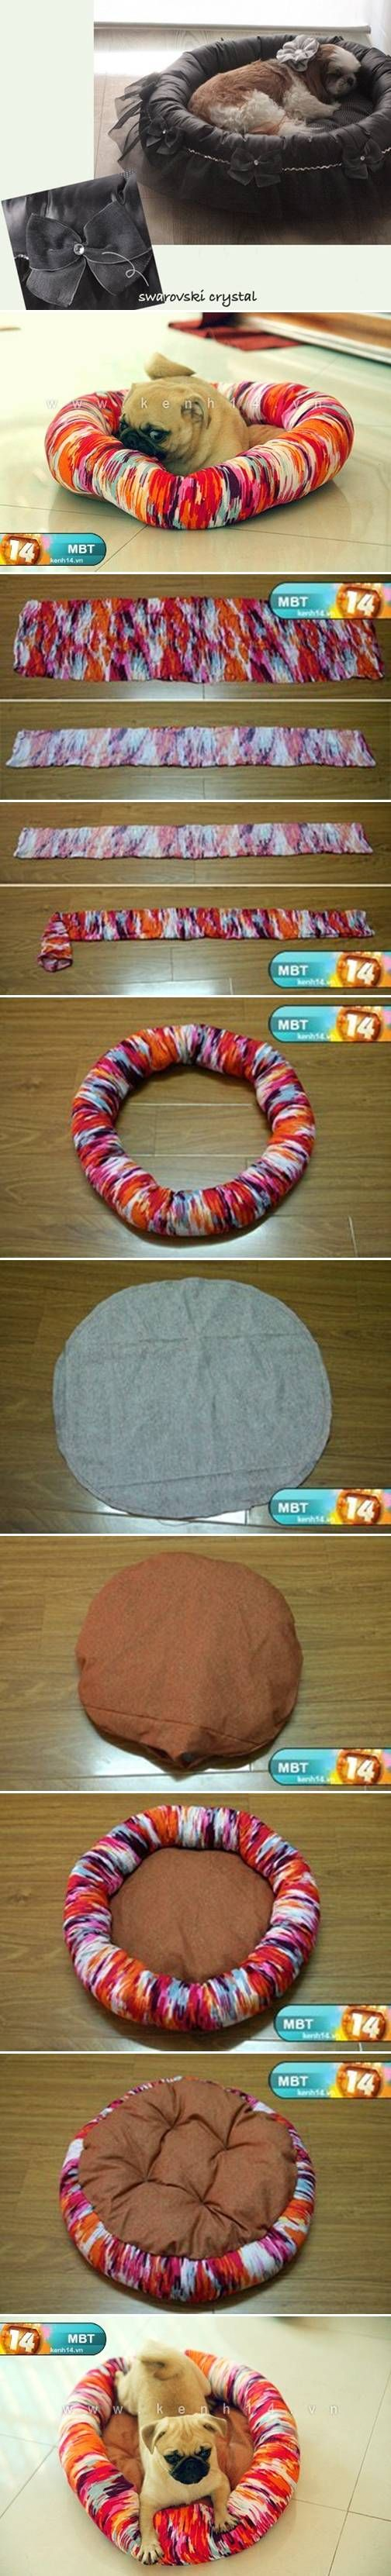 DIY Dog Bed-You can use any pretty material. Even up cycle stuff from thrift shop or your own closet!